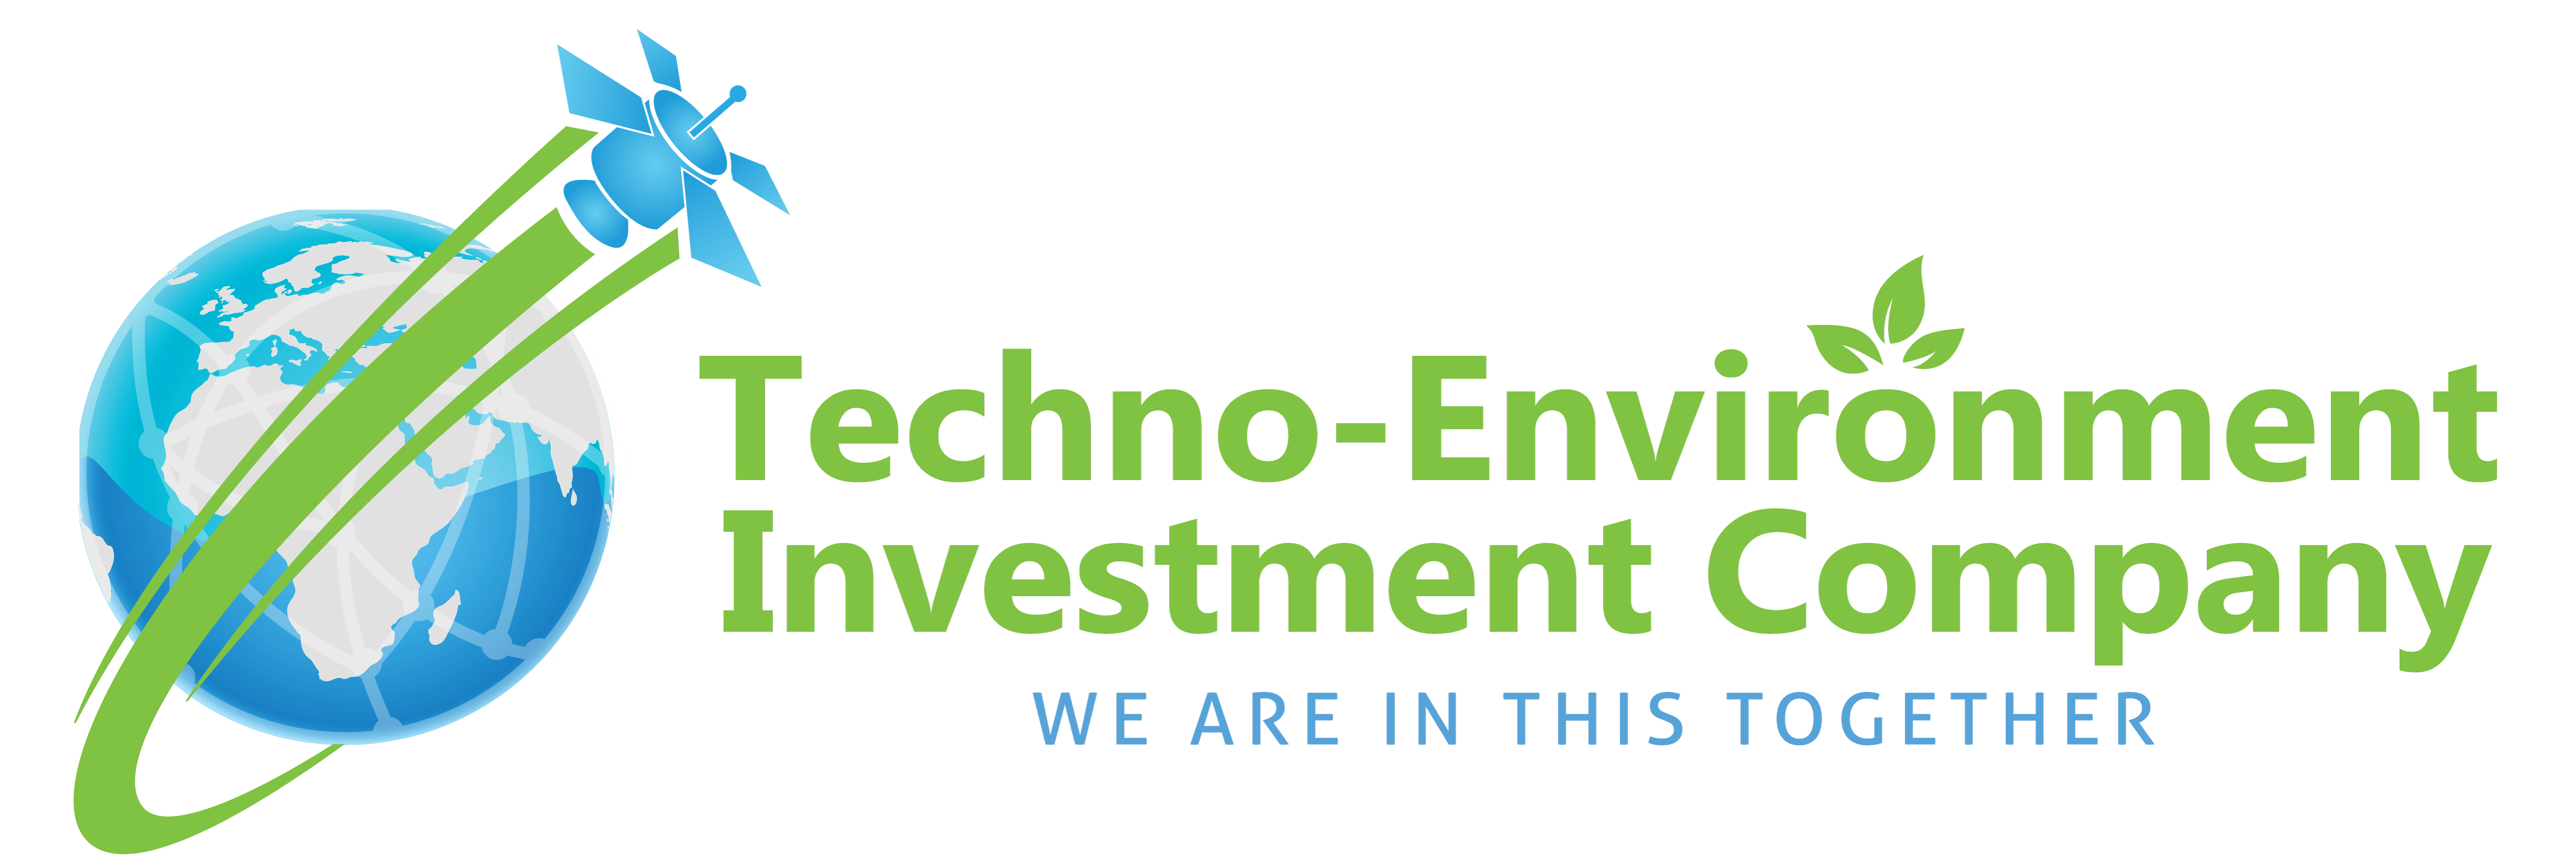 Techno-Environment Company Limited